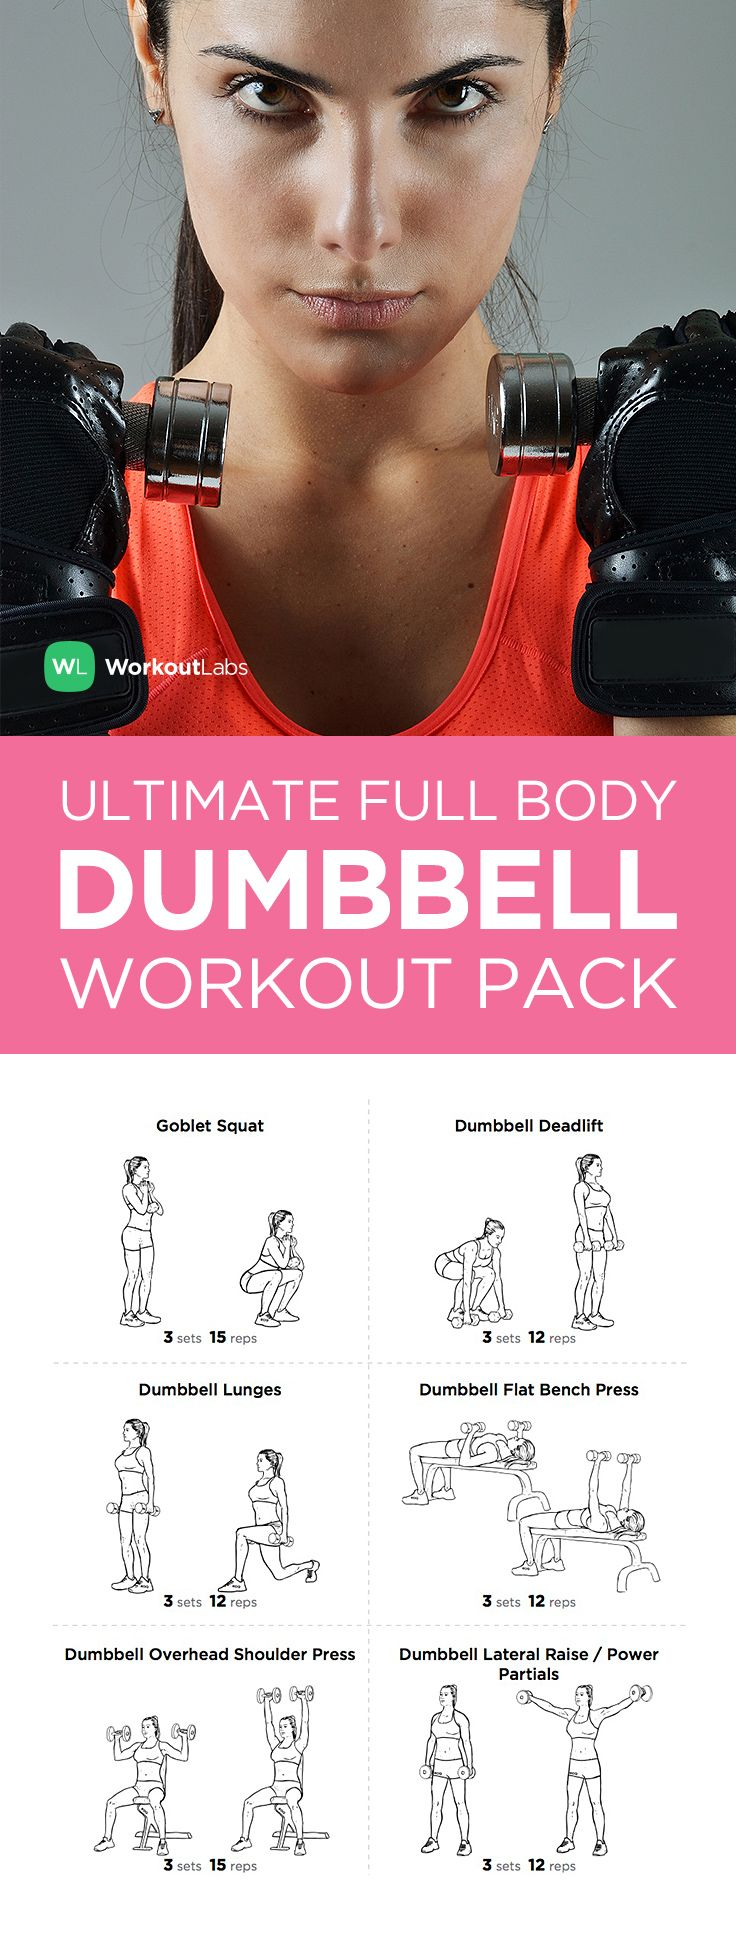 Visit https://WorkoutLabs.com/workout-packs/ultimate-full-body-dumbbell-workout-pack-for-men-women to download this Ultimate Full Body Dumbbell Workout Pack for Men & Women